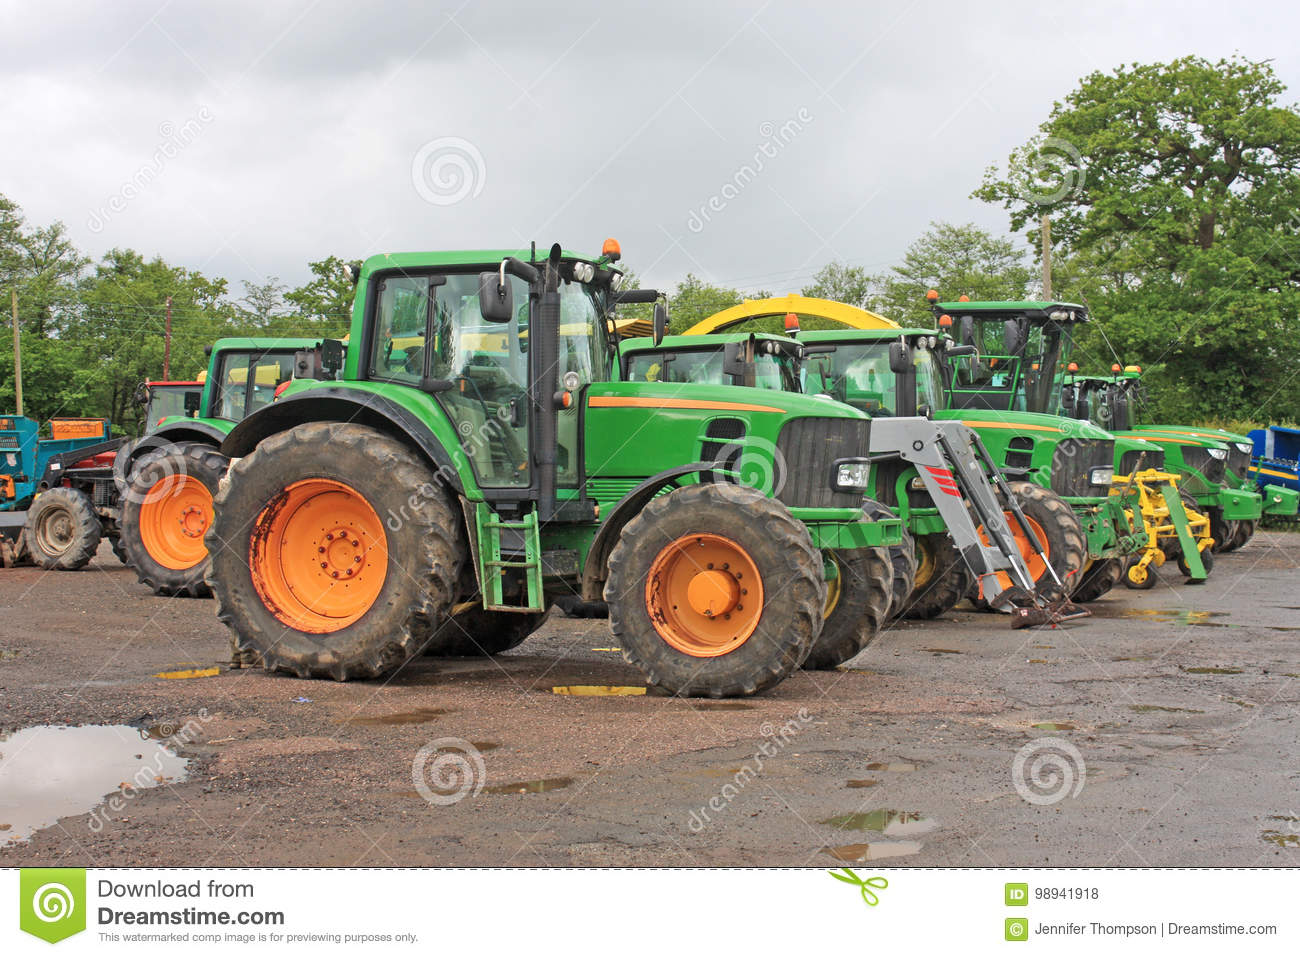 Tractors in a yard